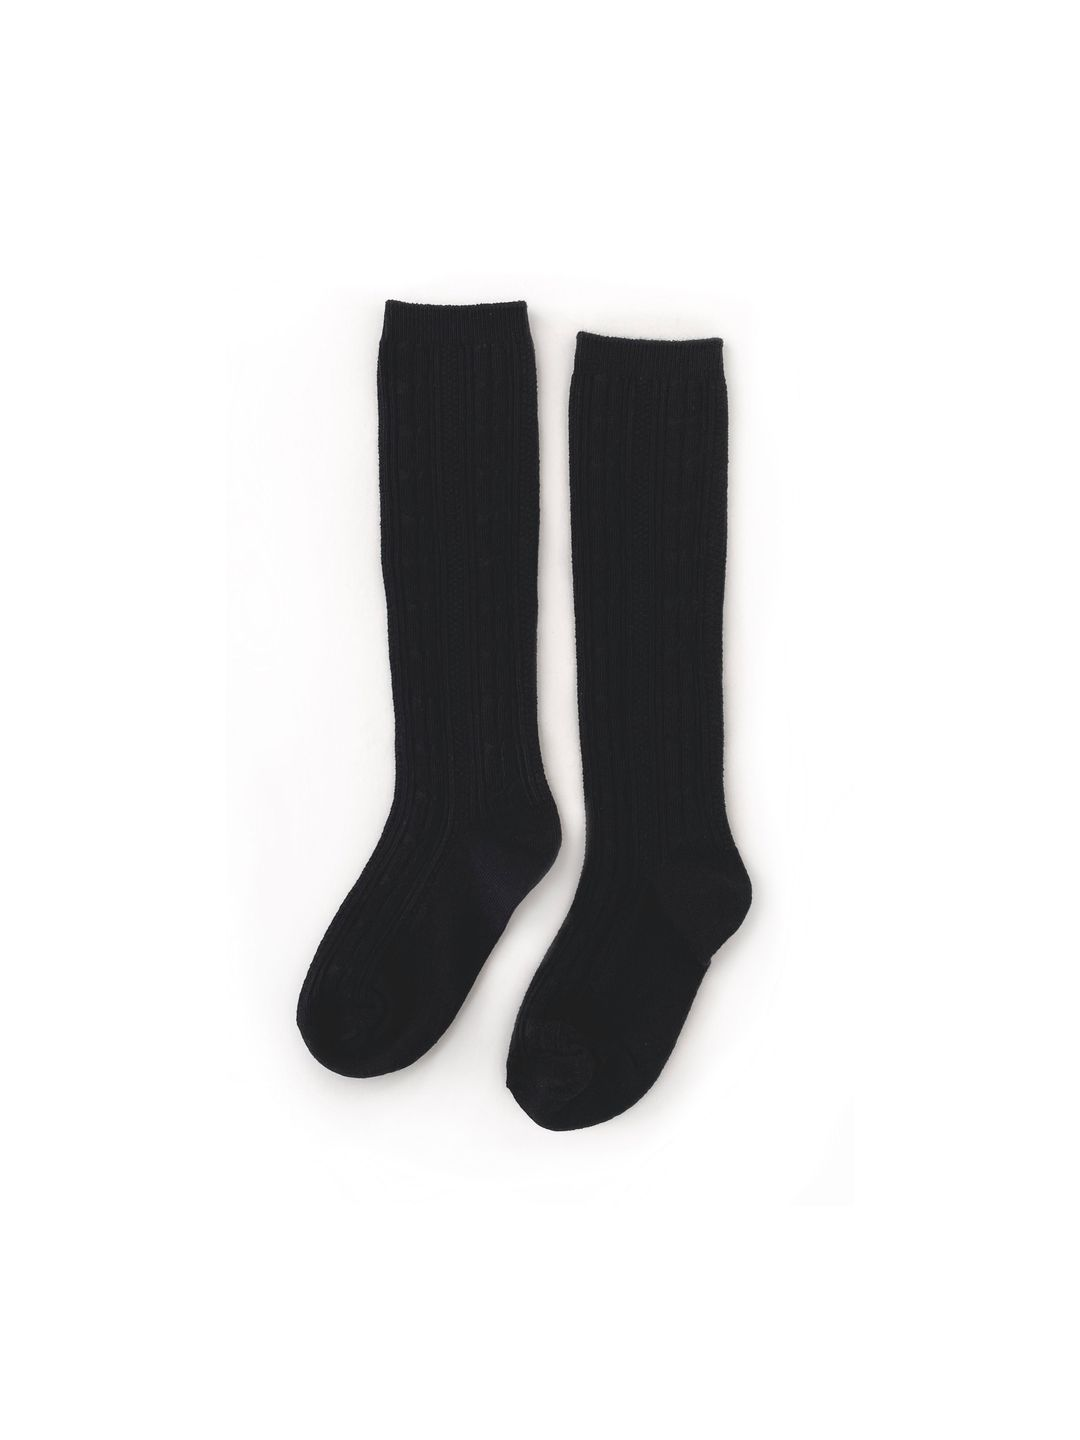 Black Cable Knit Knee High Socks